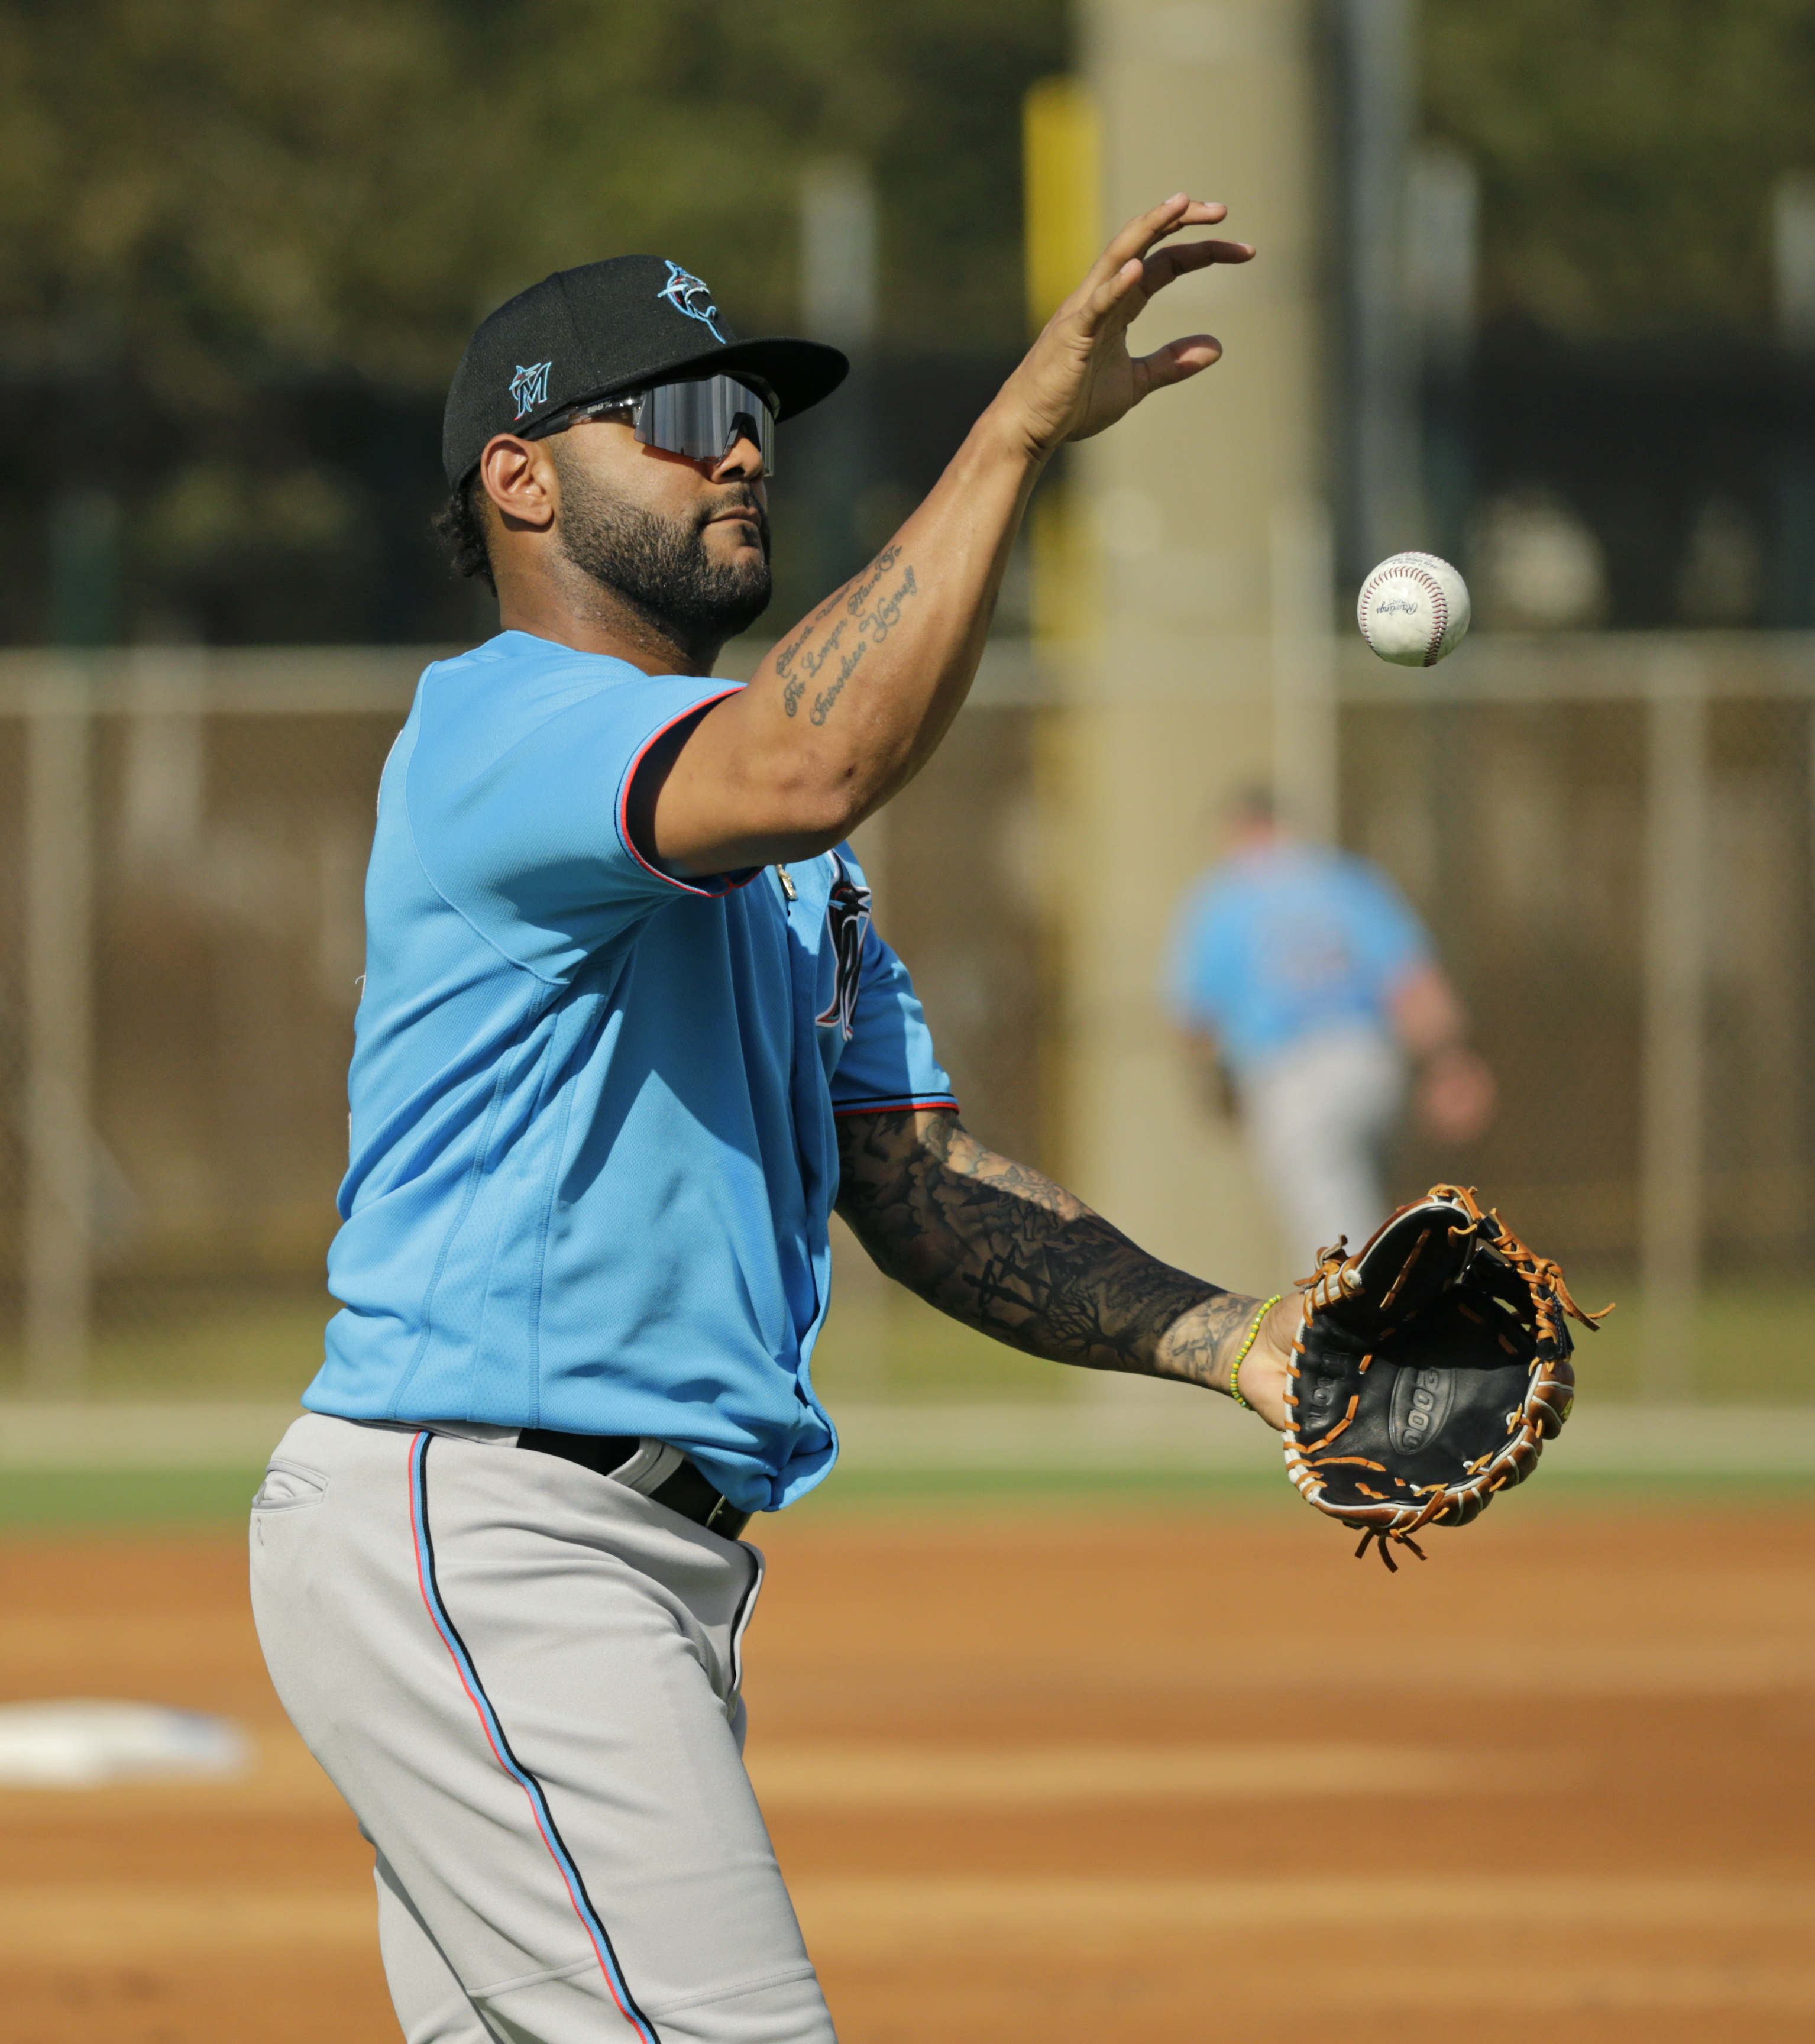 Miami Marlins spring training workout 2/20/2020